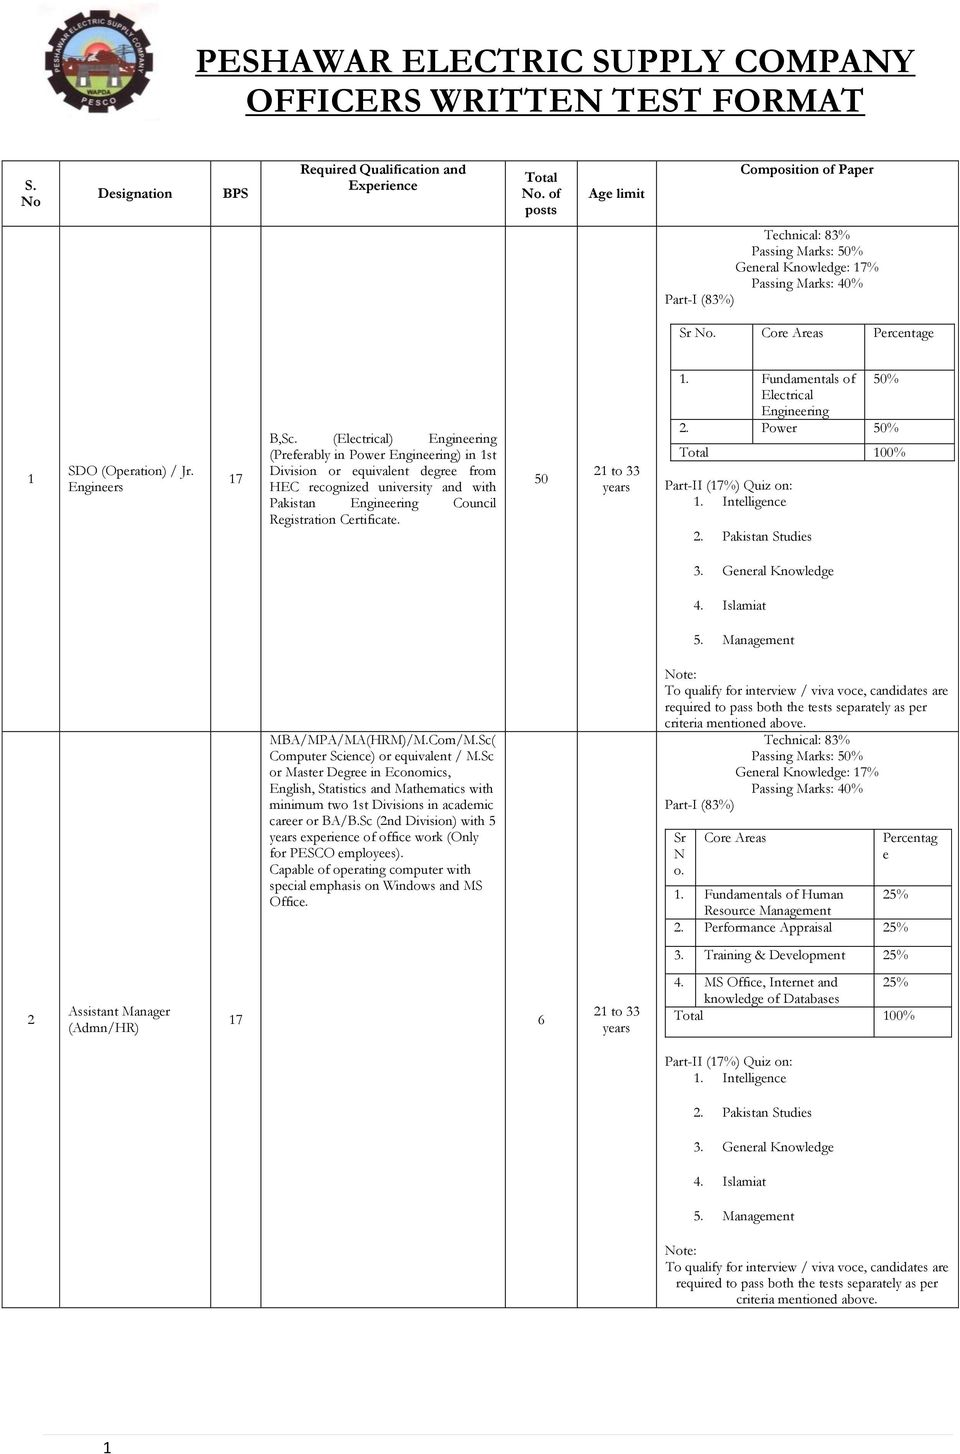 (Electrical) Engineering (Preferably in Power Engineering) in st Division or equivalent degree from HEC recognized university and with Pakistan Engineering Council Registration Certificate. 50.